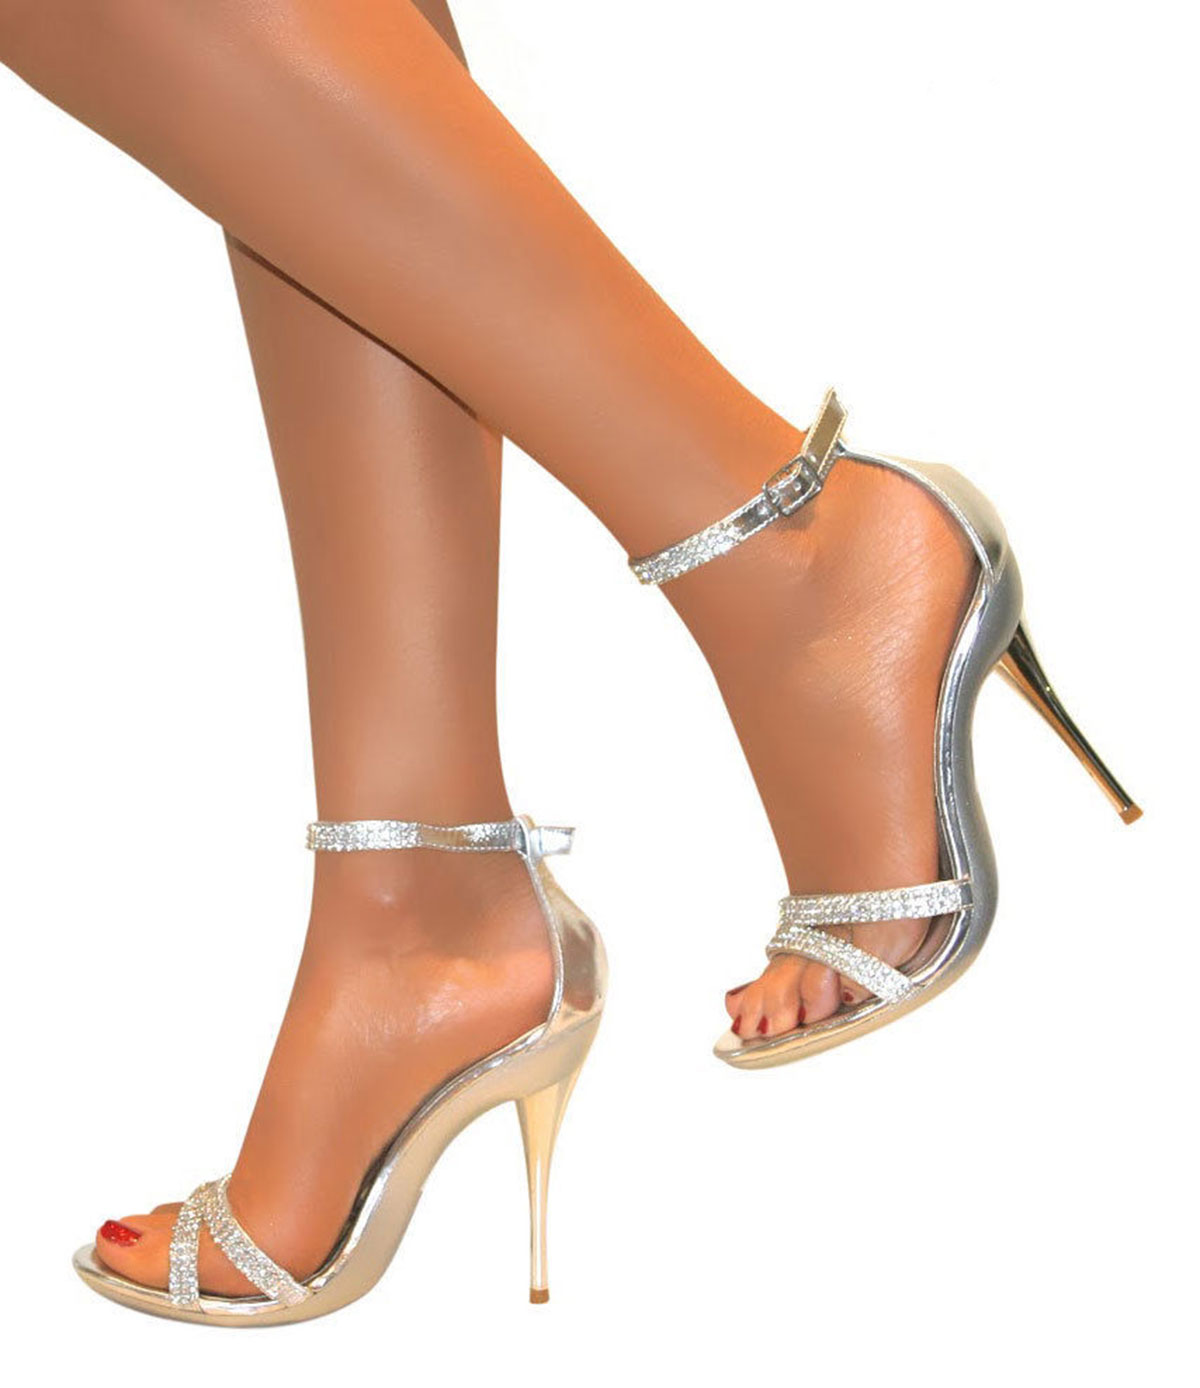 LADIES DIAMANTE SILVER STRAPPY ANKLE SANDALS SHOES HEELS ...